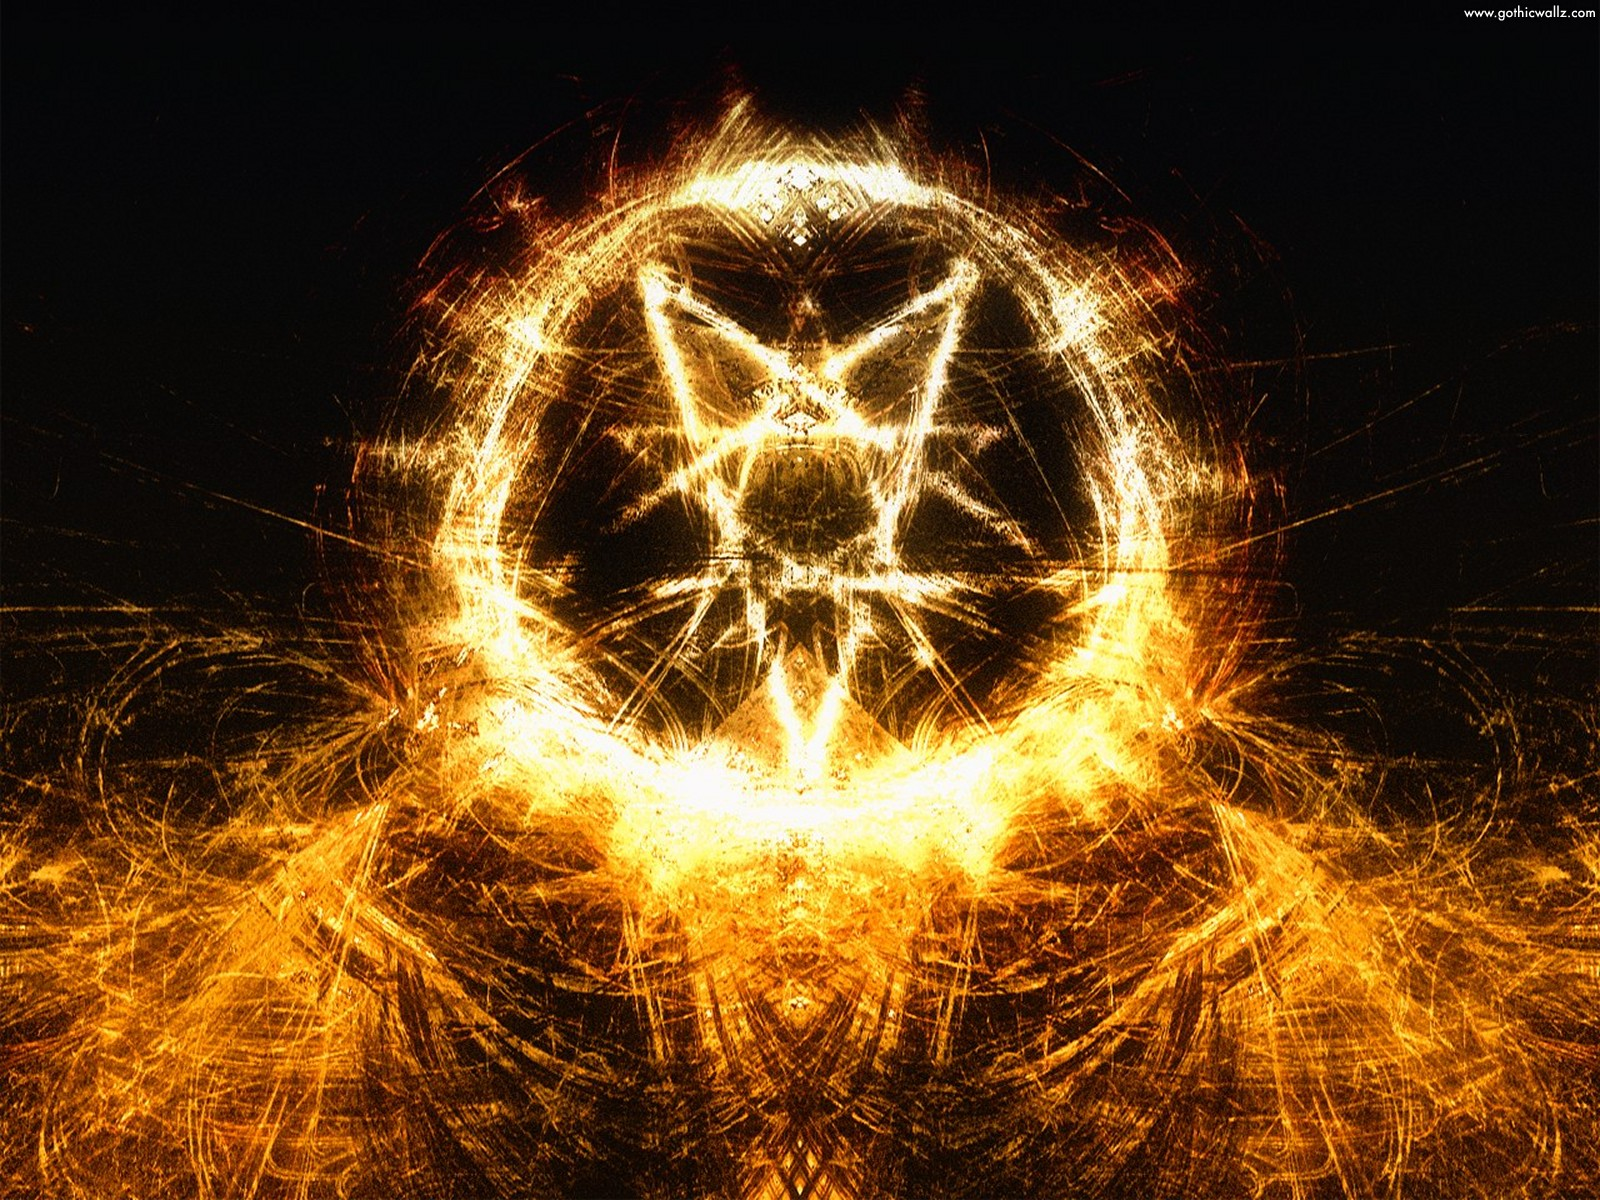 Abstract Satanic | Gothic Wallpaper Download